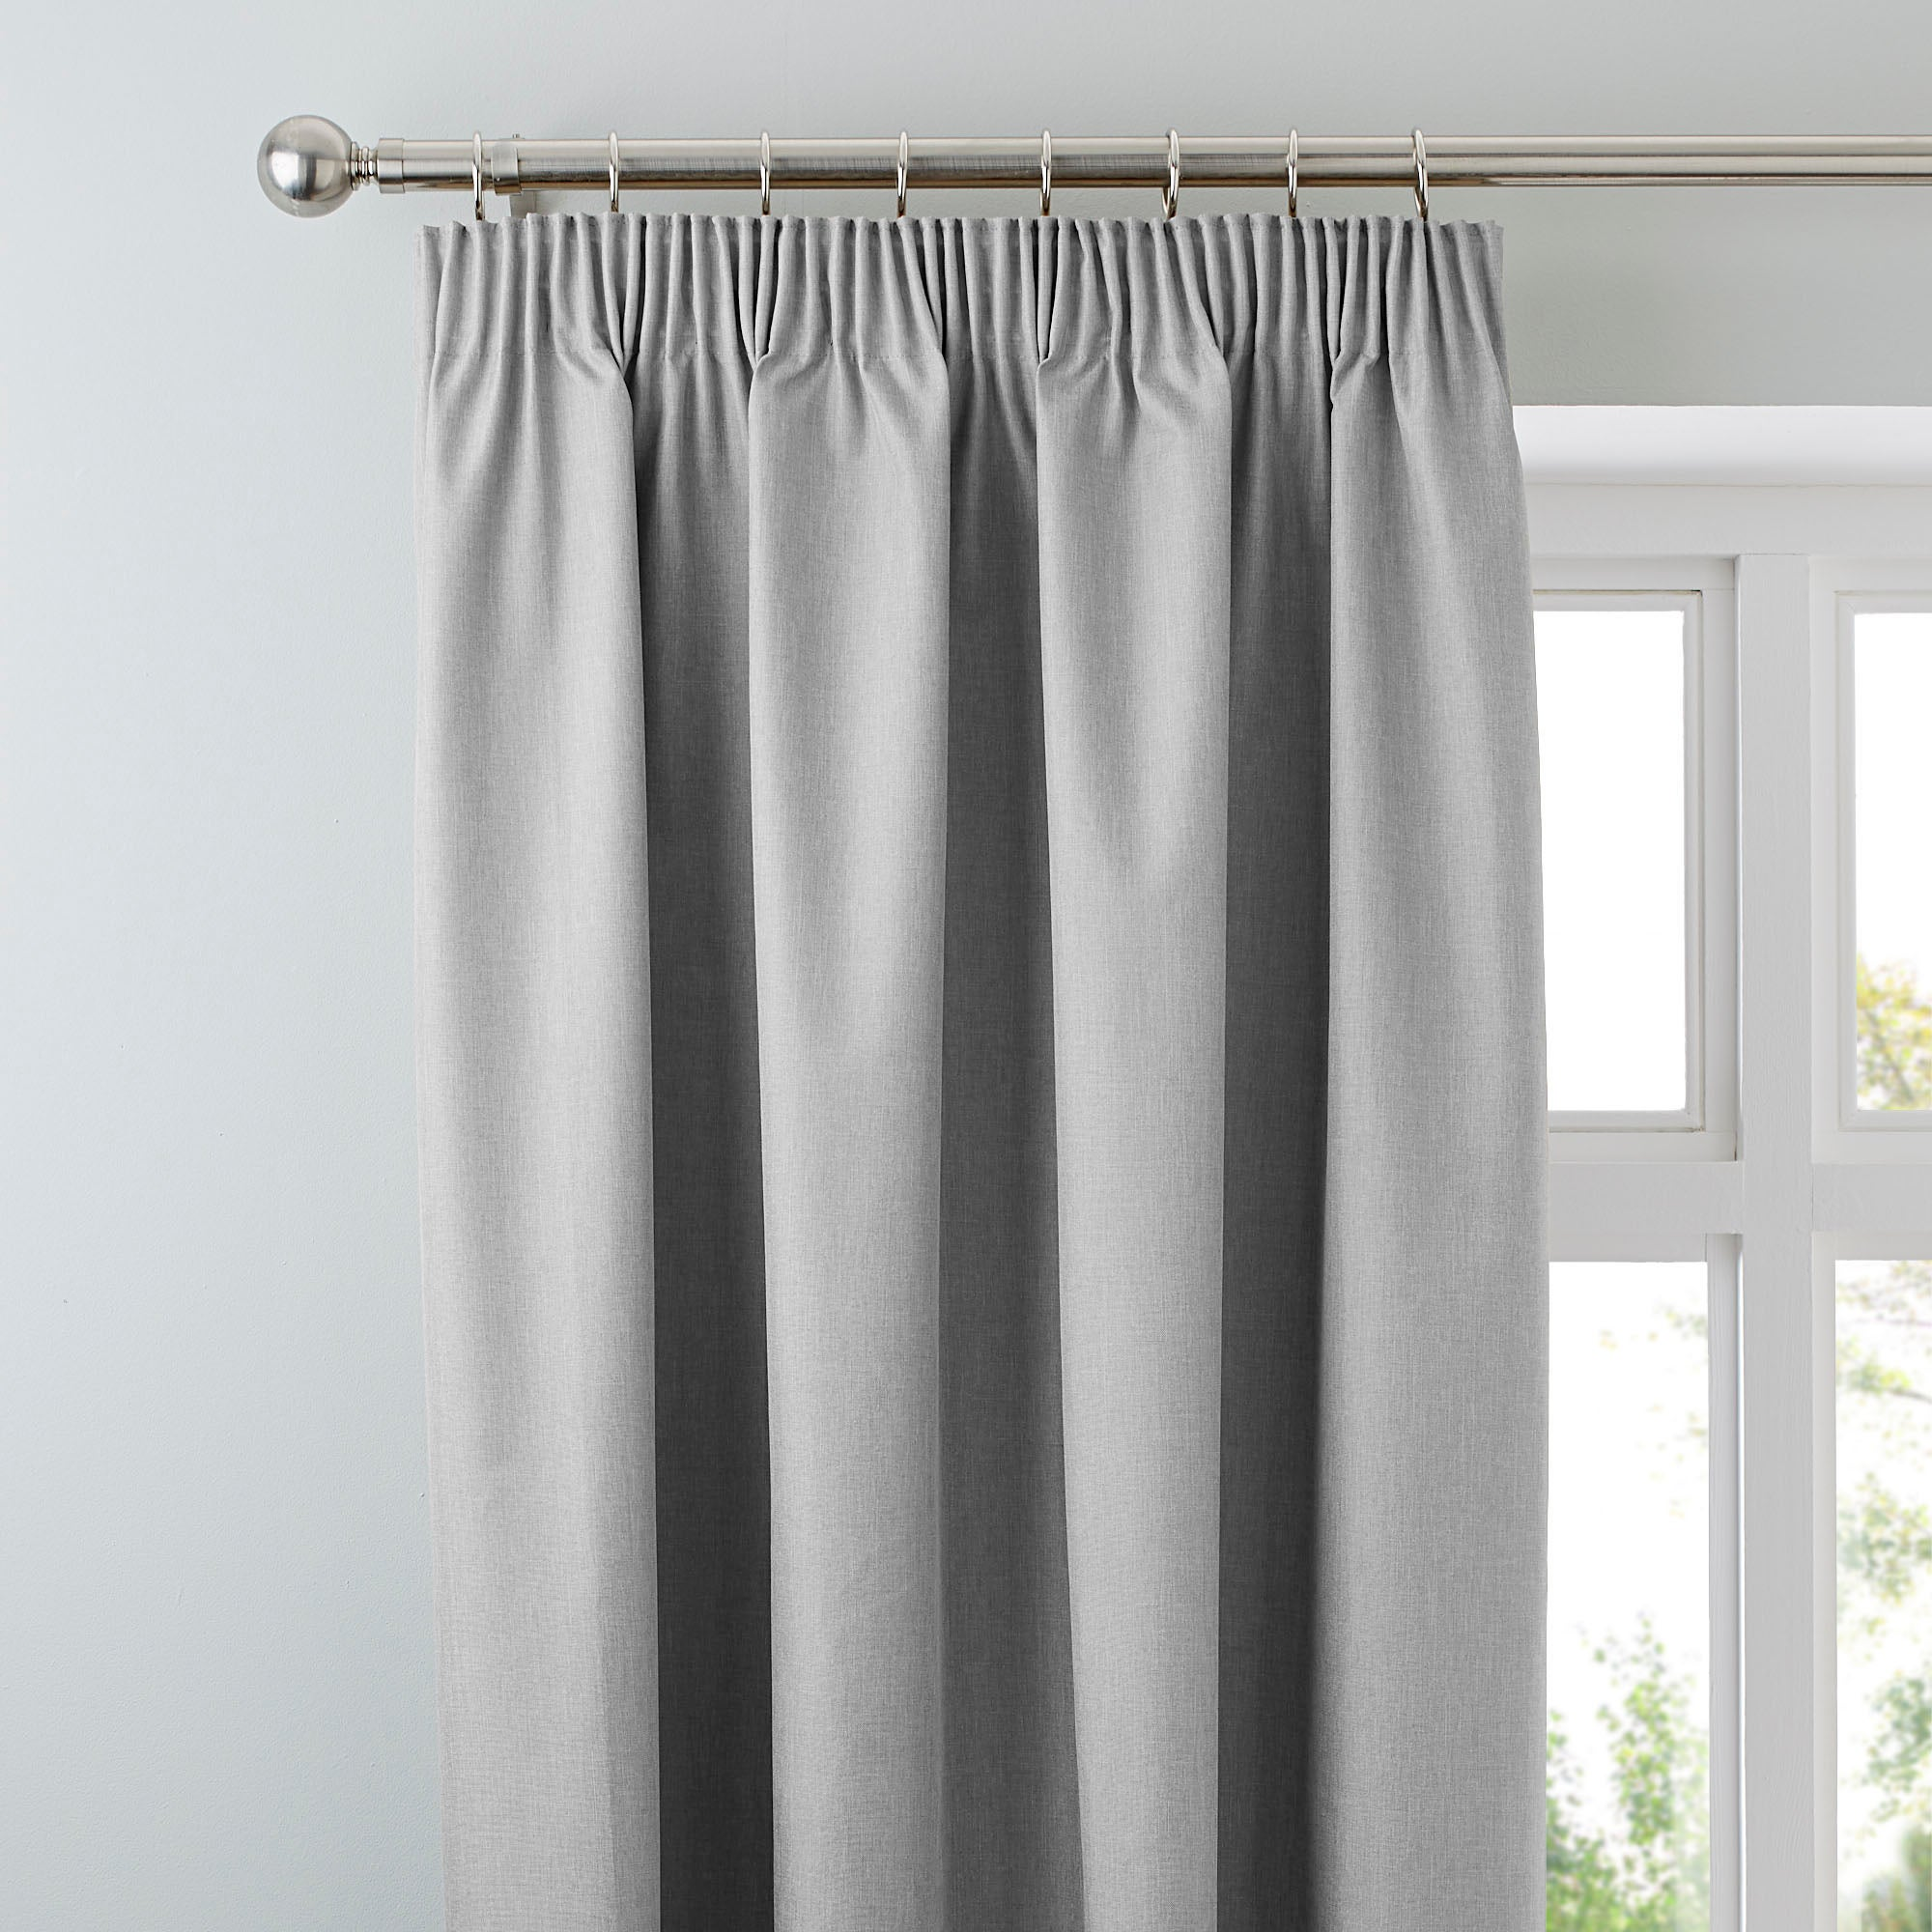 Photo of Arizona soft grey blackout pencil pleat curtains grey